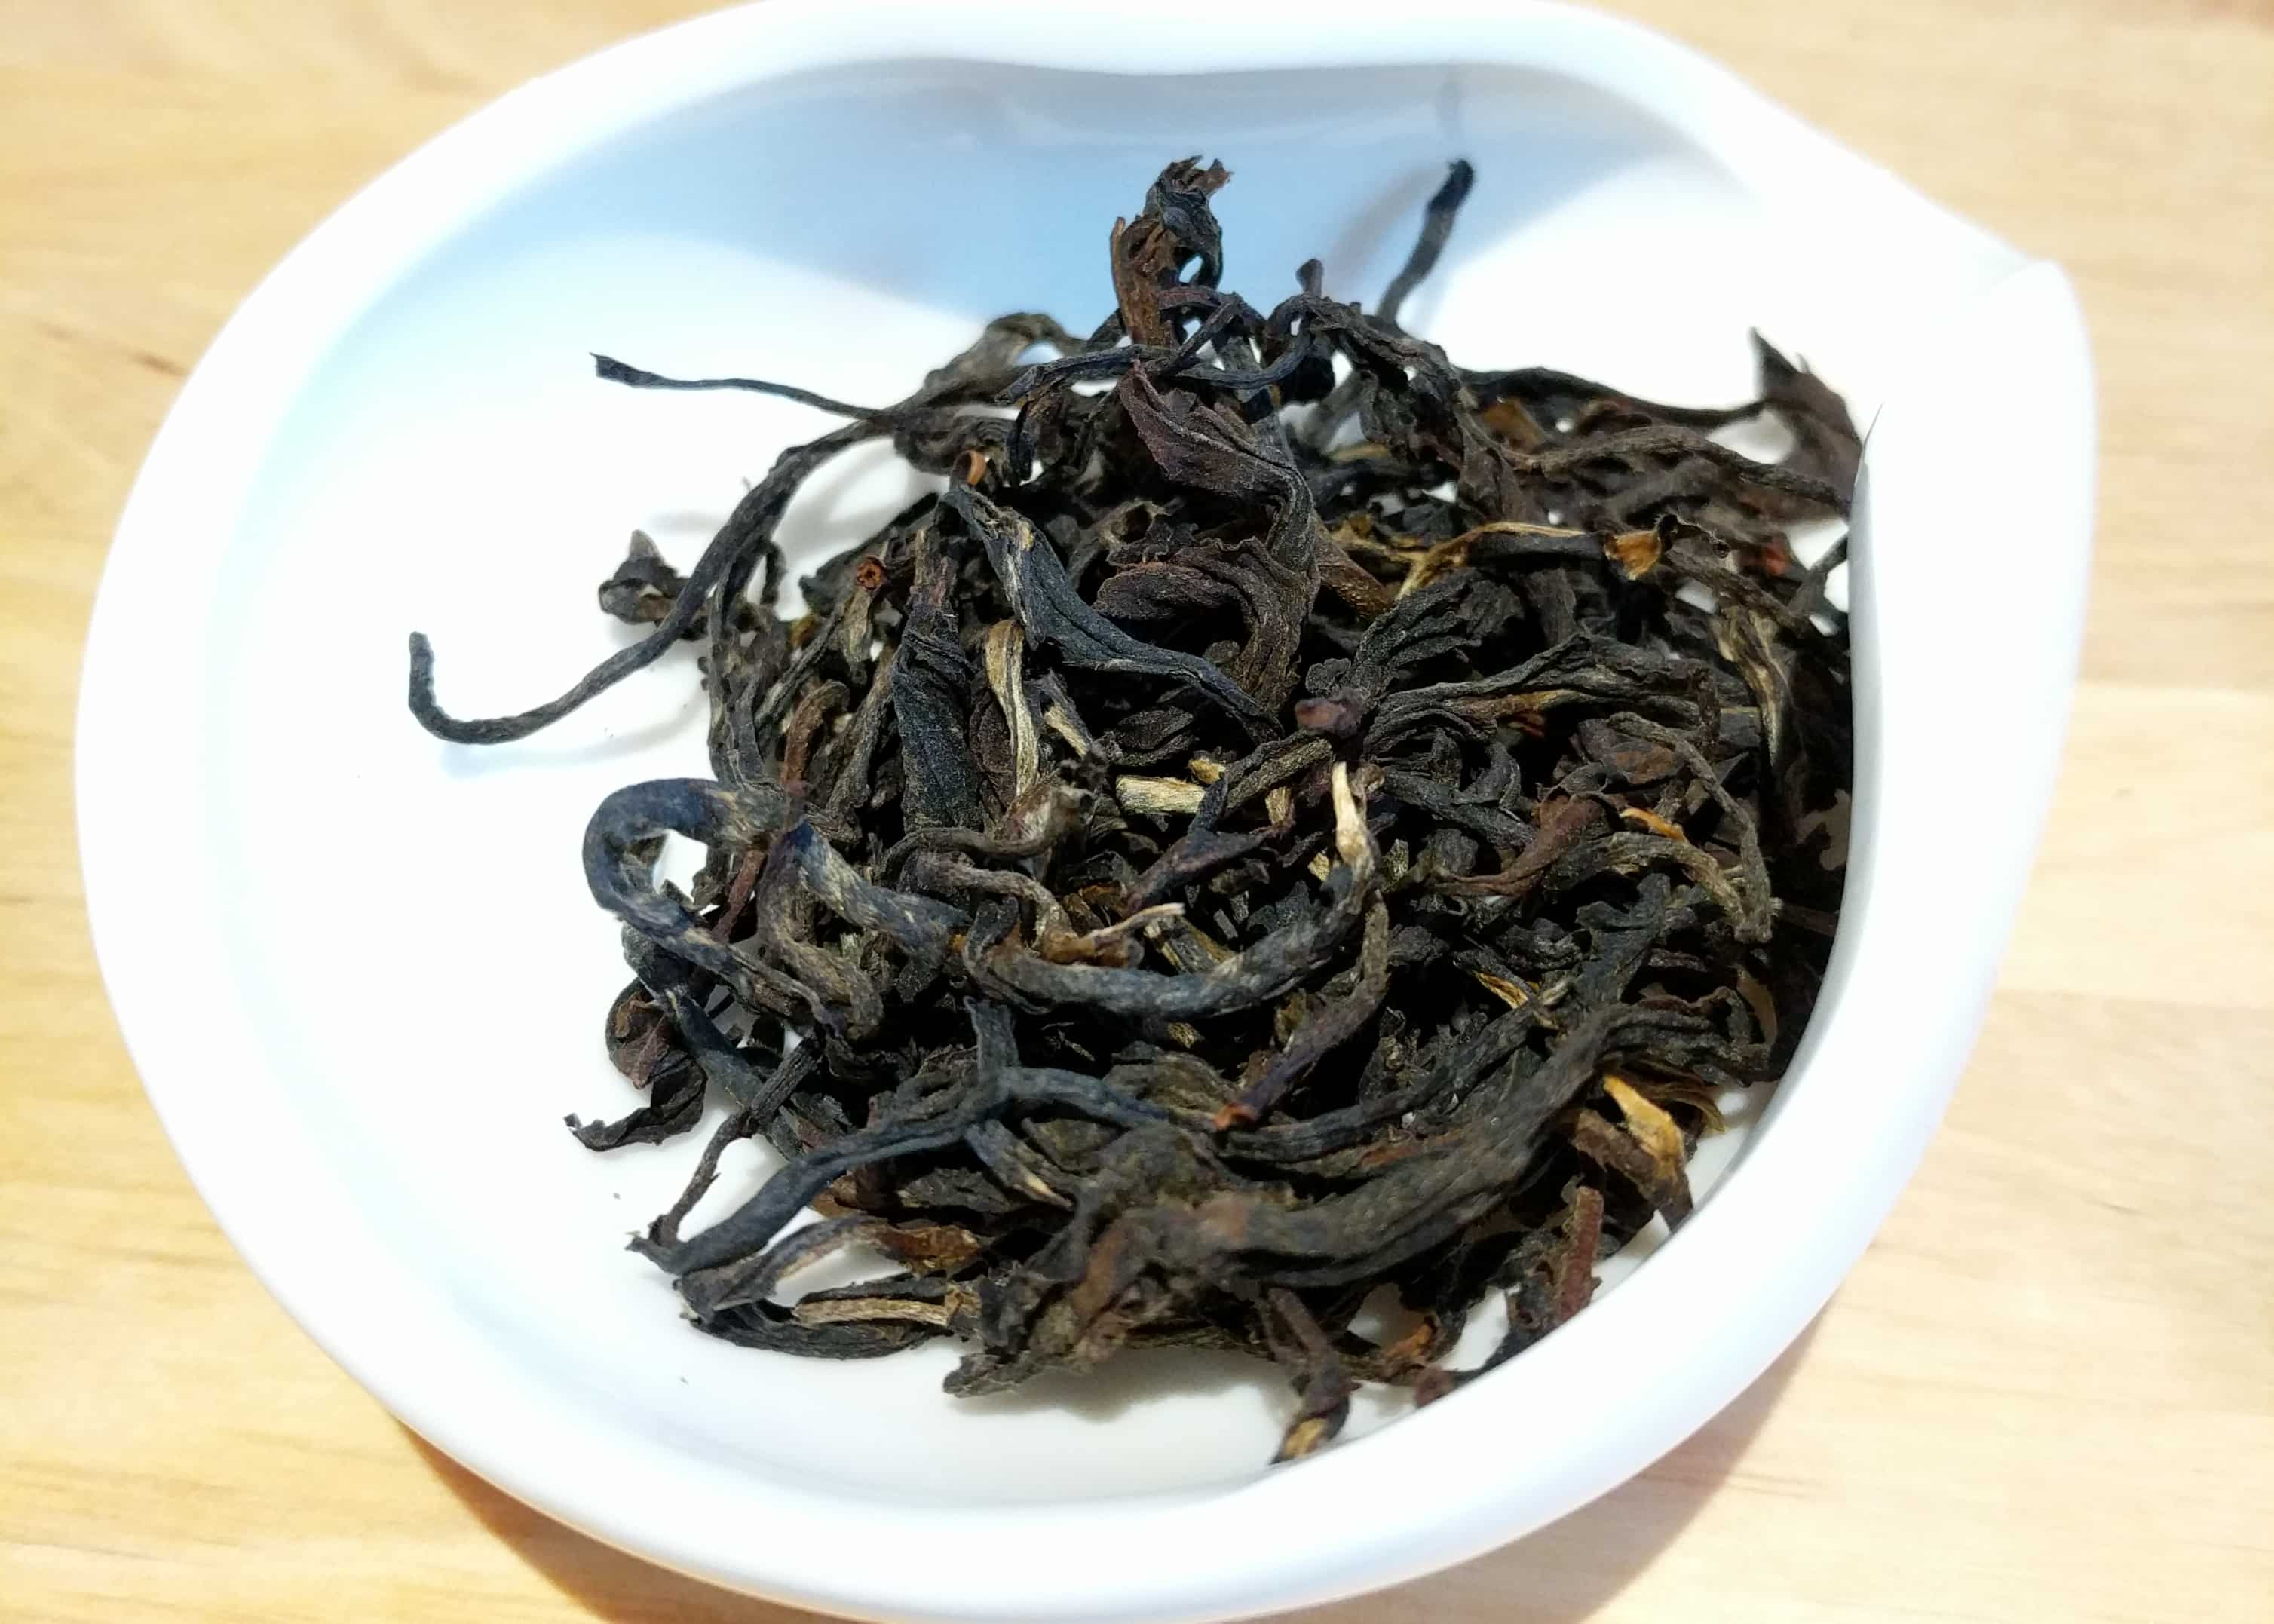 Glenwood Reserve 2043 OP Black Artisan Sri Lankan Tea